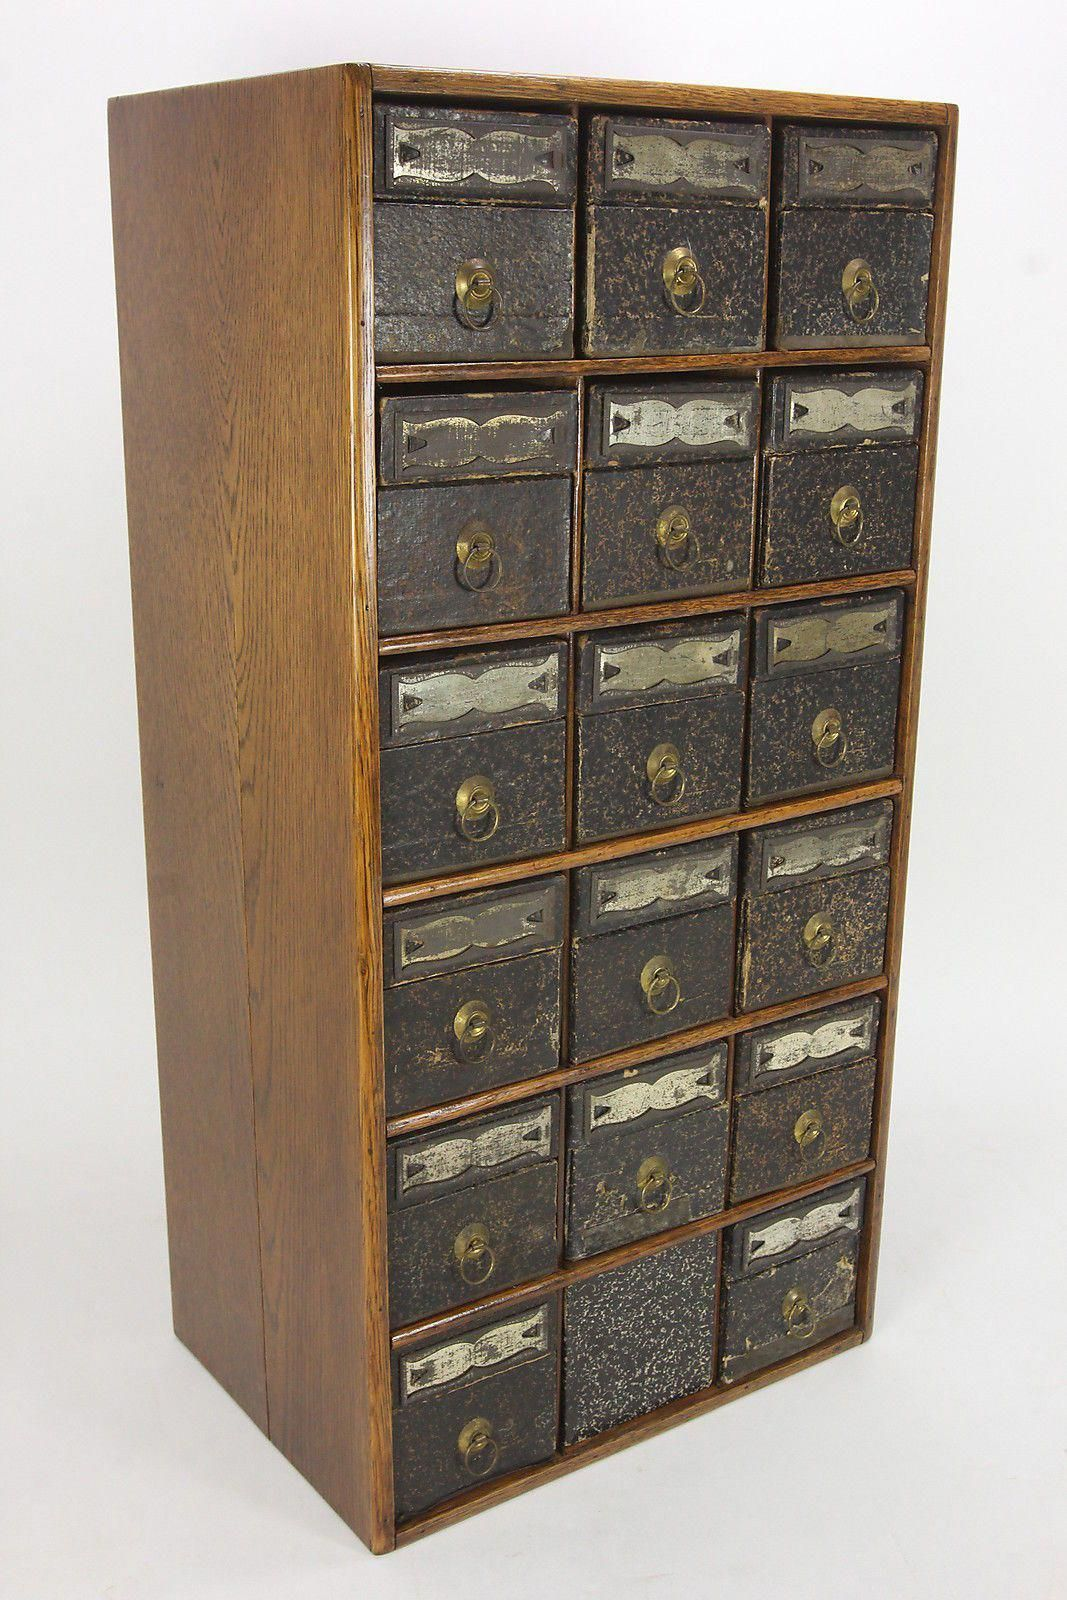 We Are Offering For Your Consideration A Globe Wernicke 18 Drawer File Box Organizer Or Office Cabinet The Cabinet Is Vintage Office Vintage Cabinets Drawers